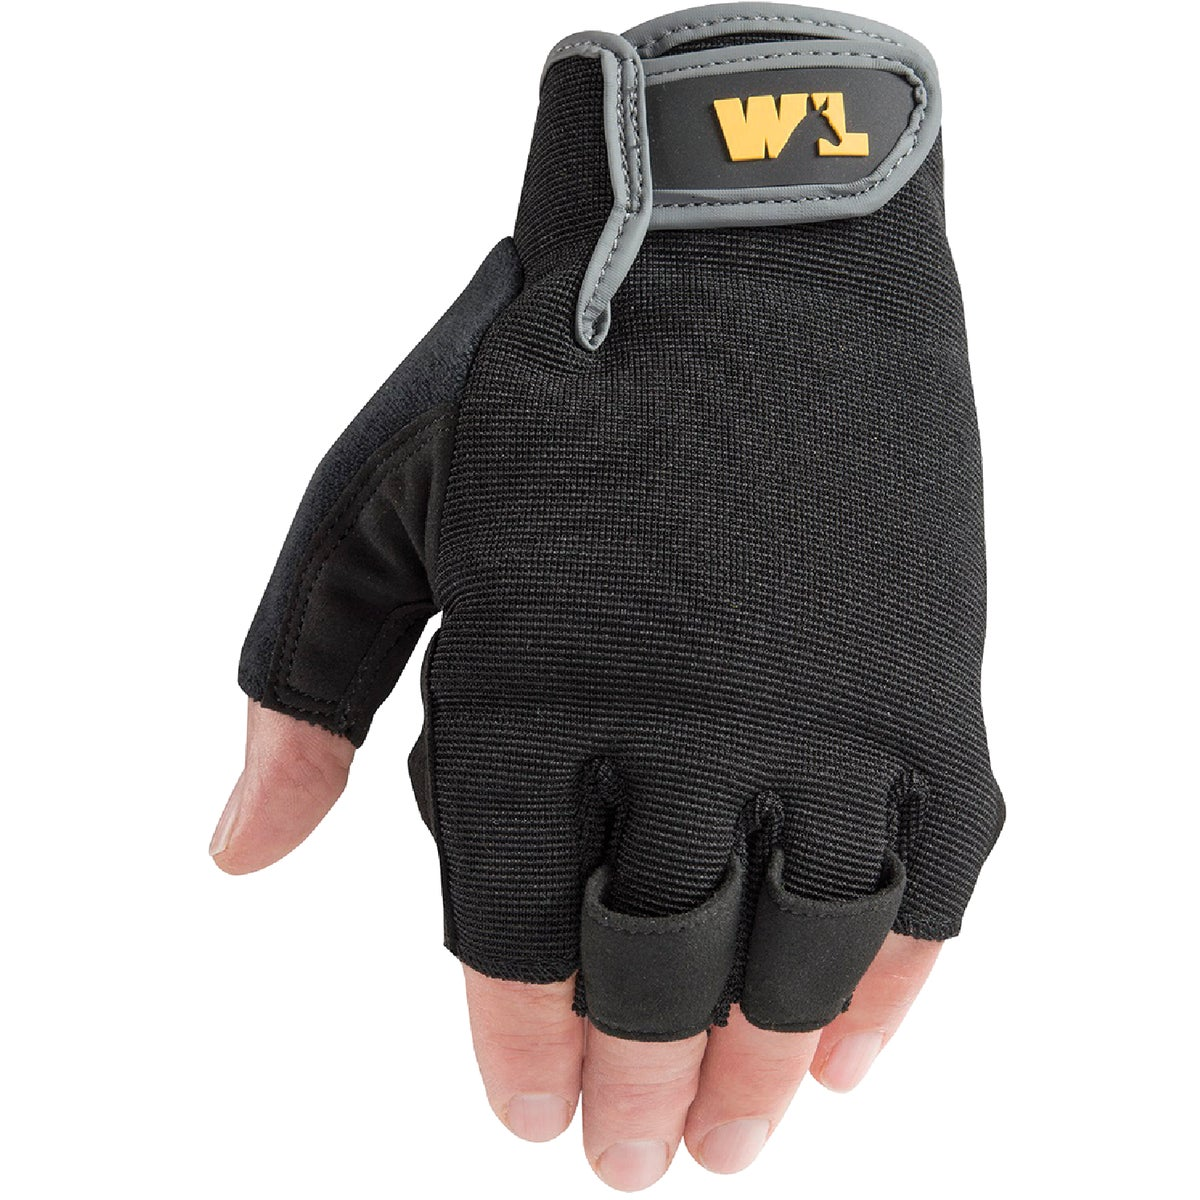 MED FINGERLESS GLOVE